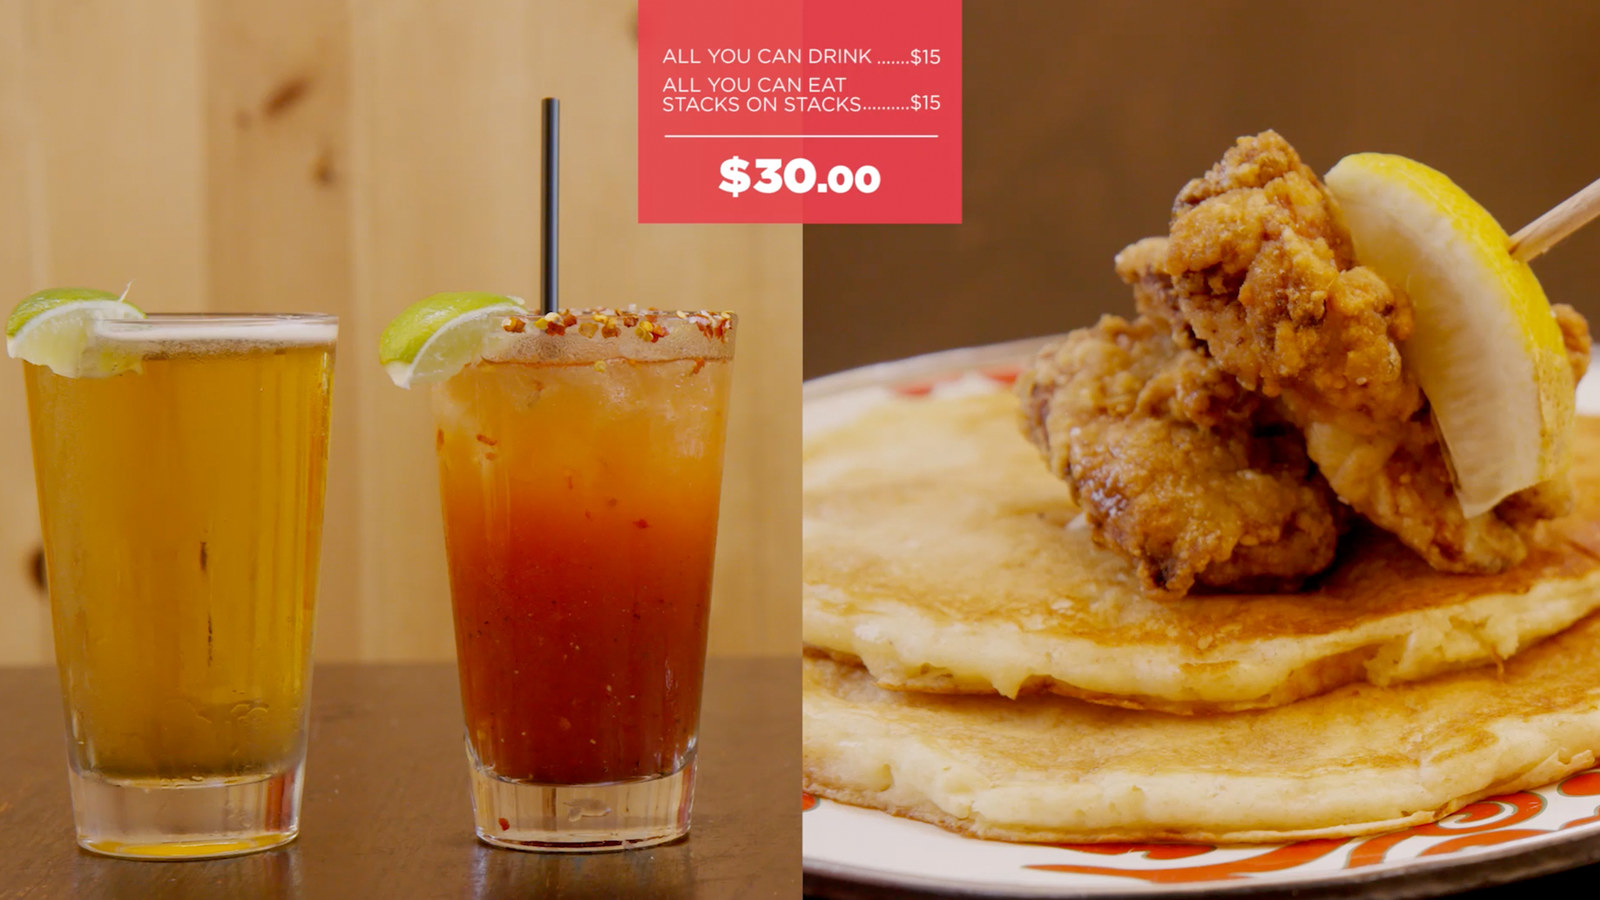 We Had Brunch Priced At $18.75 Vs. $113 To See Which One Was The ...